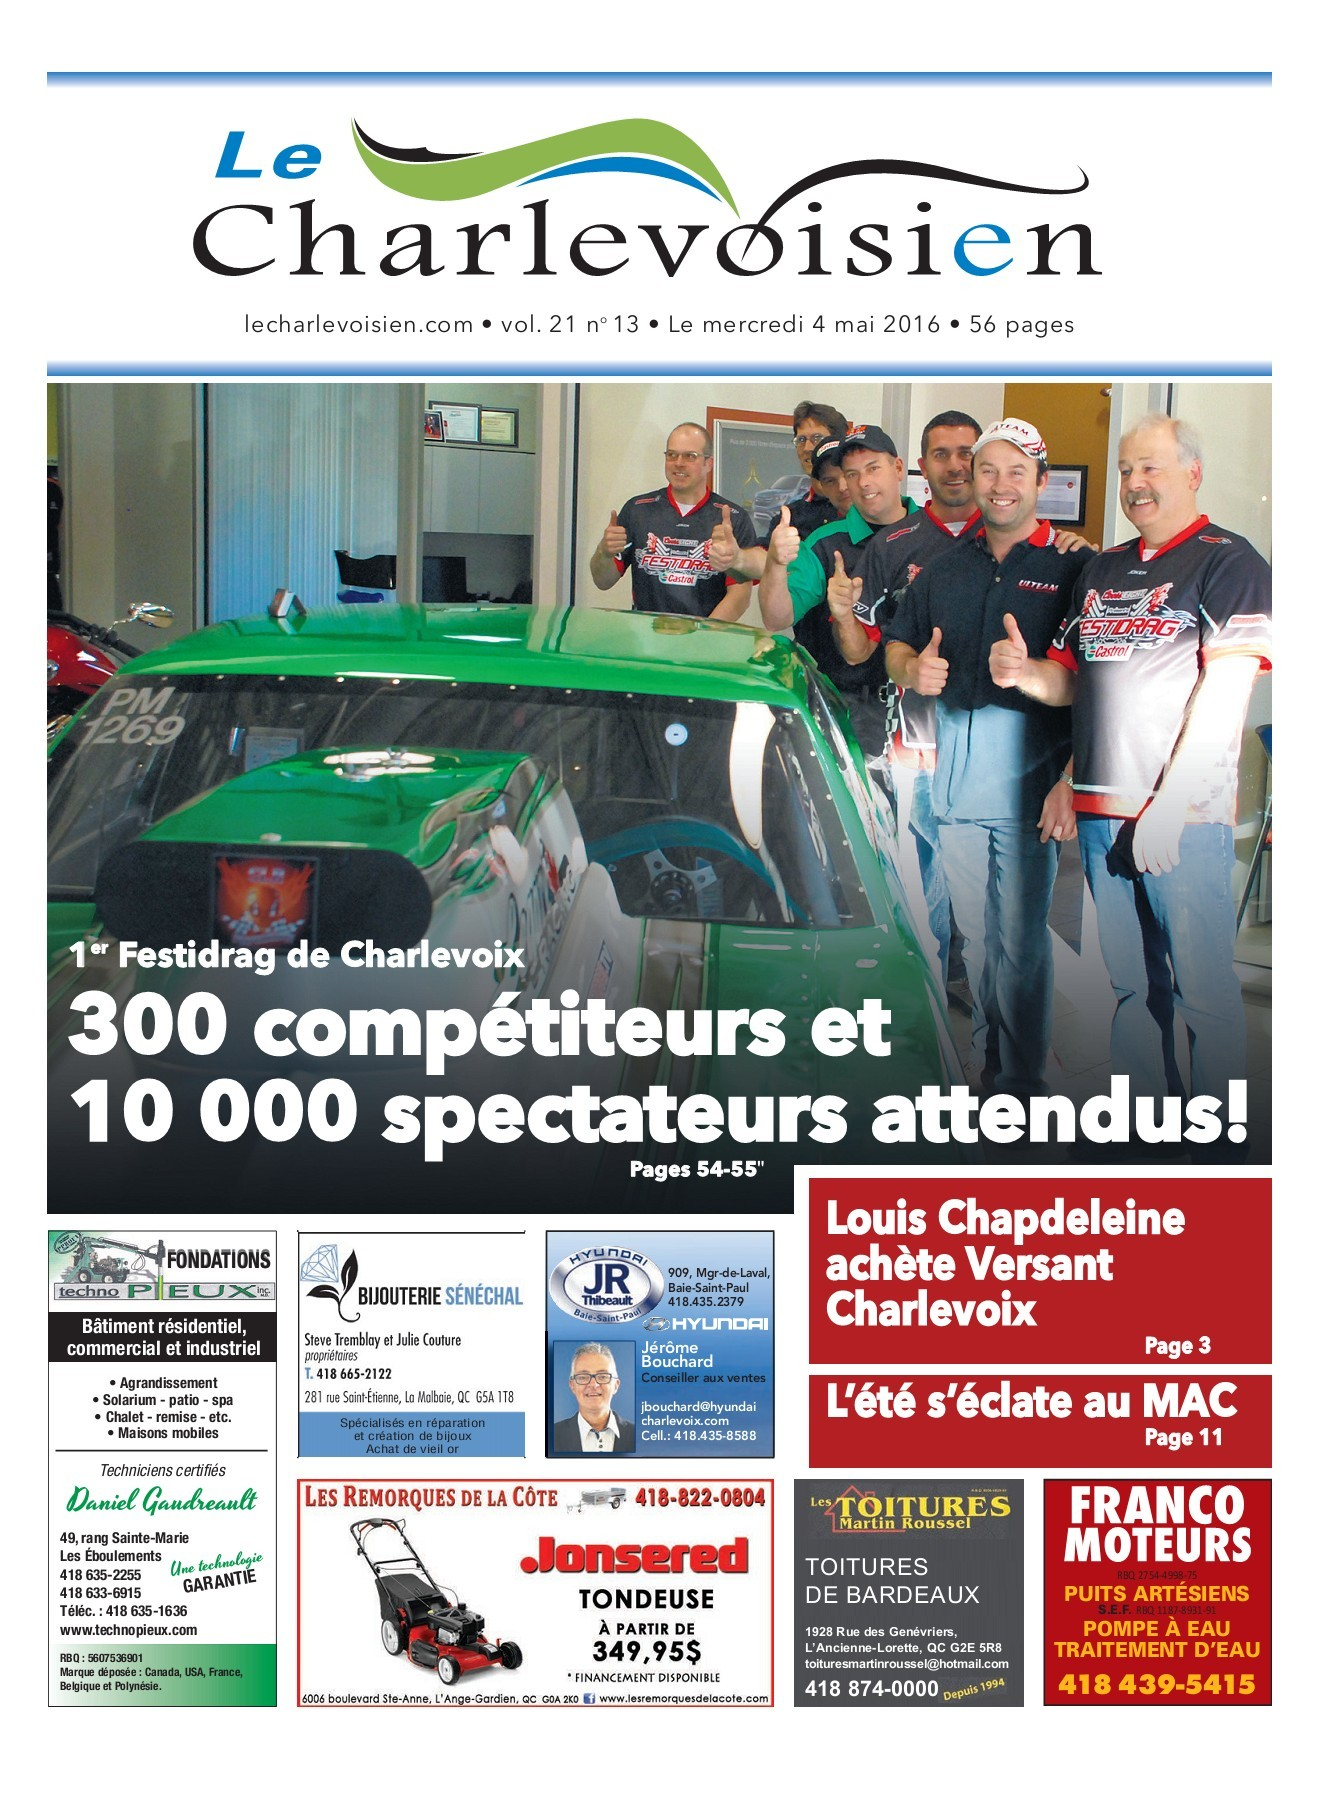 Chaise De Jardin Carrefour Nouveau Le Charlevoisien 4 Mai 2016 Pages 1 50 Text Version Of 35 Frais Chaise De Jardin Carrefour